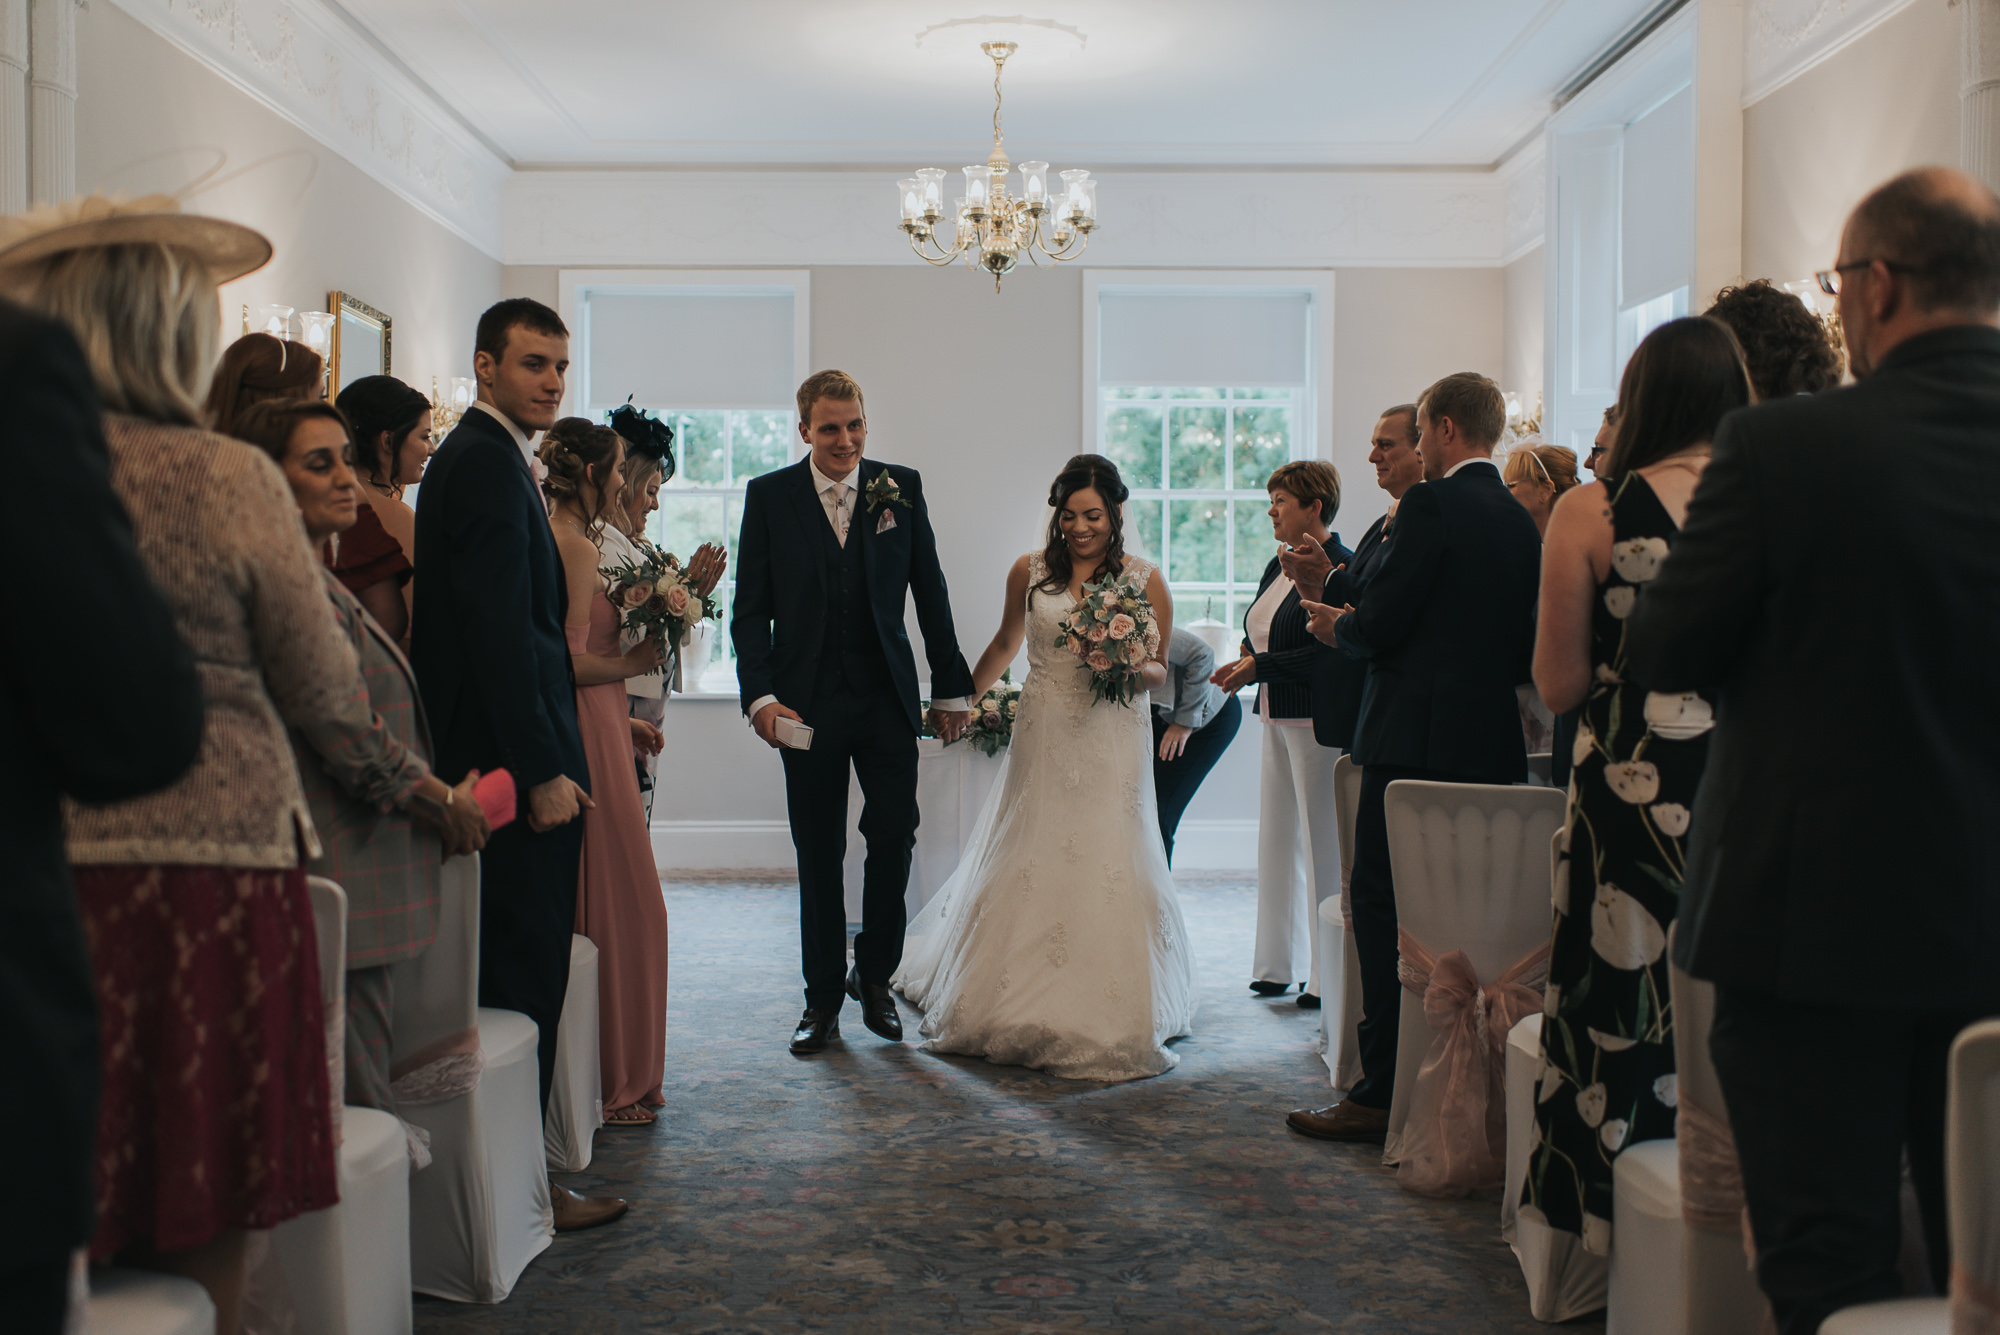 Statham lodge natural and candid wedding photography north west bested full time edding photographer adam joe roberts photography (56 of 96).jpg